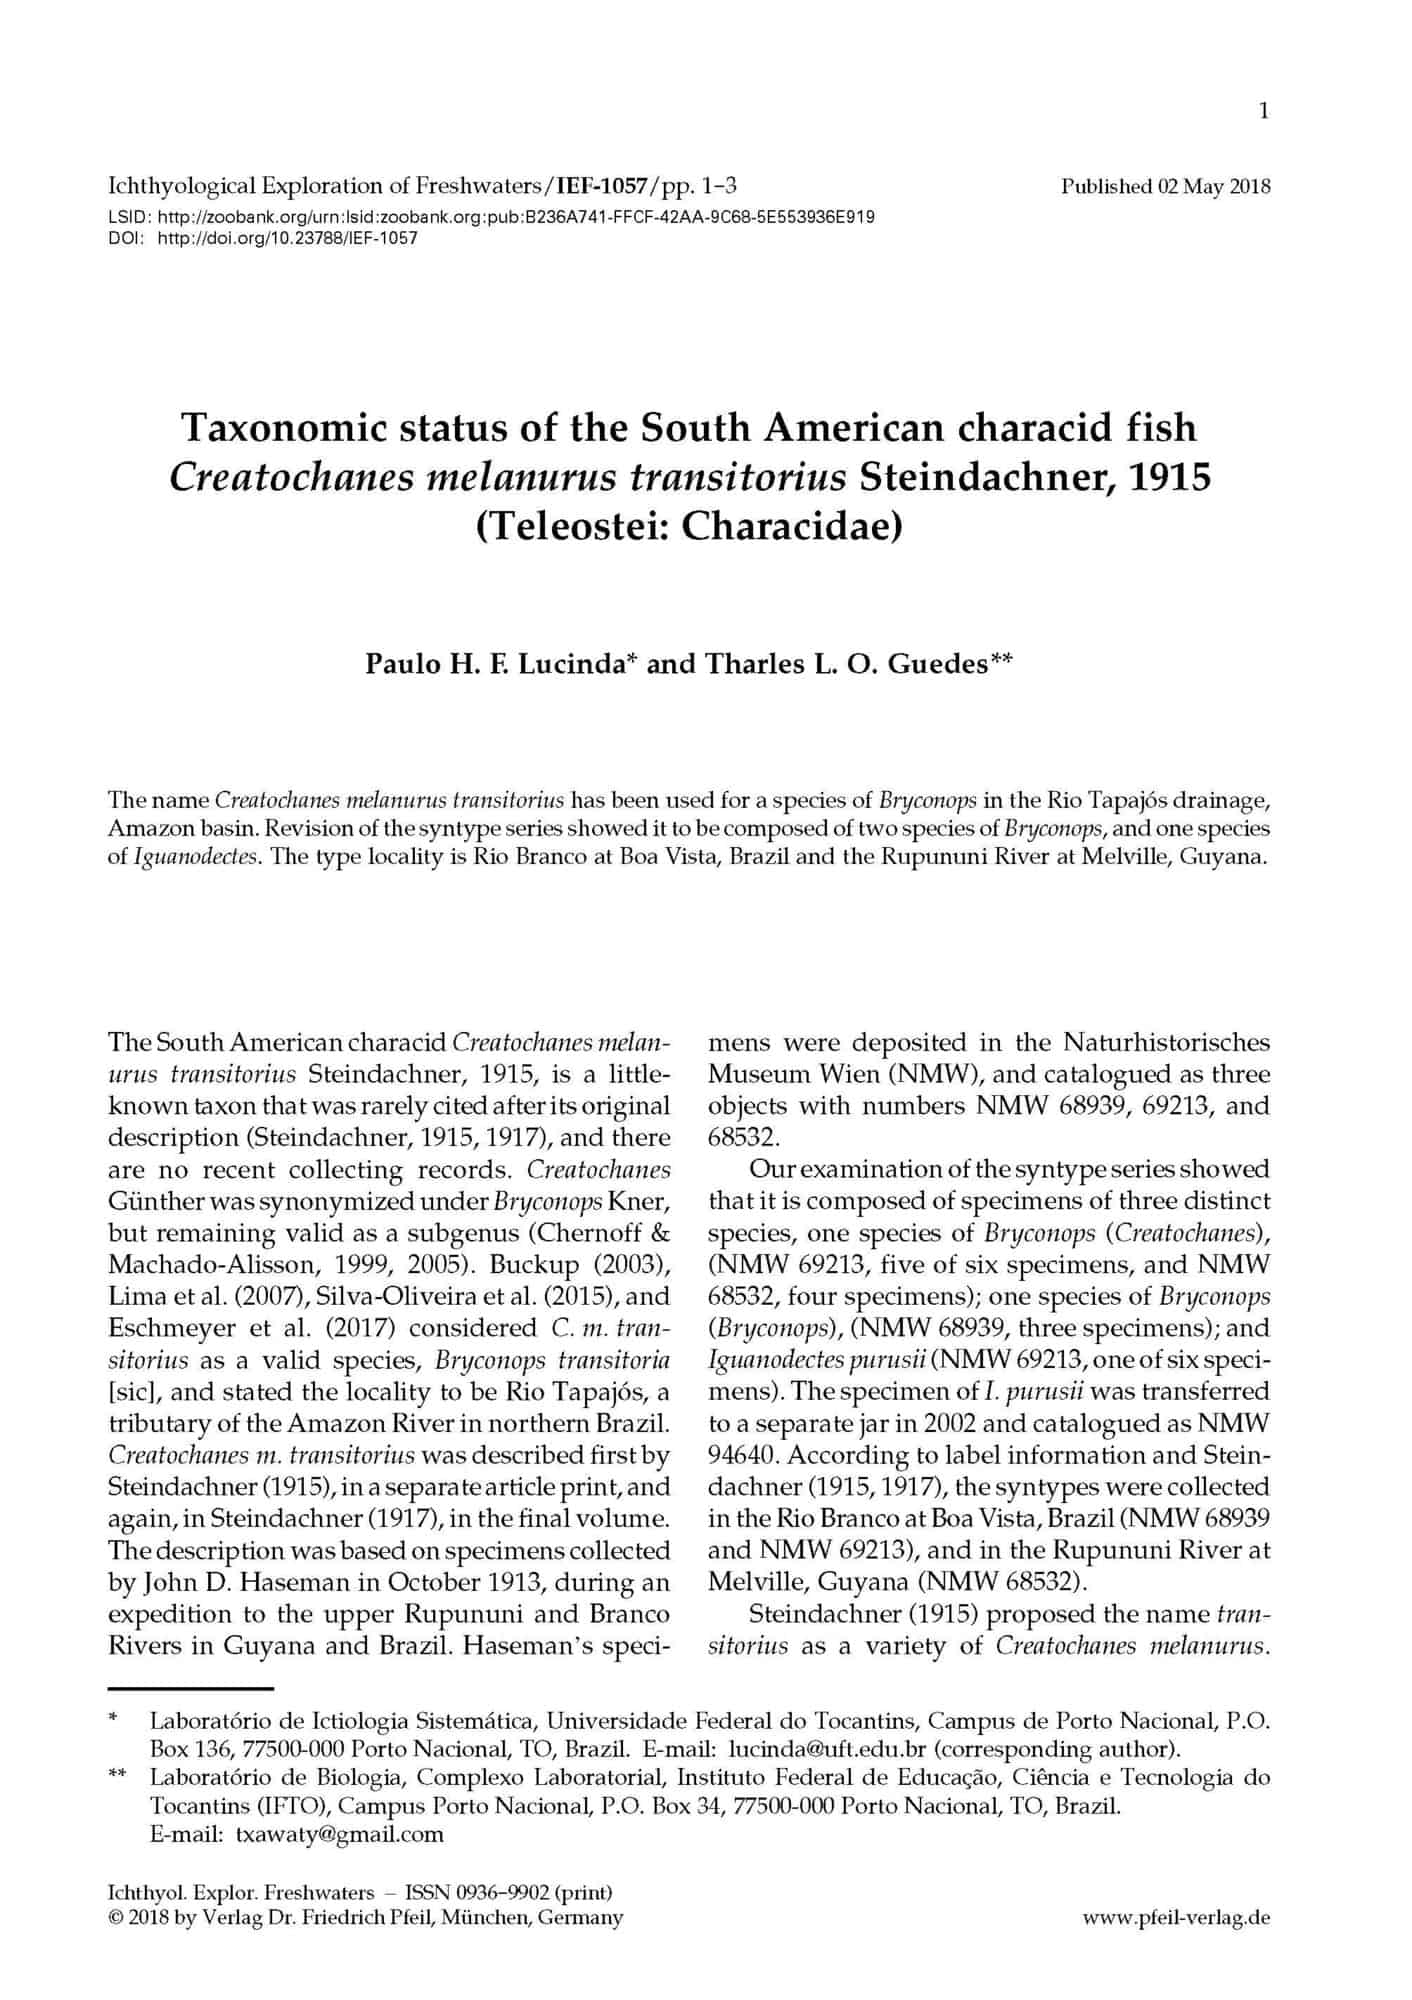 Taxonomic status of the South American characid fish Creatochanes melanurus transitorius Steindachner, 1915 (Teleostei: Characidae)